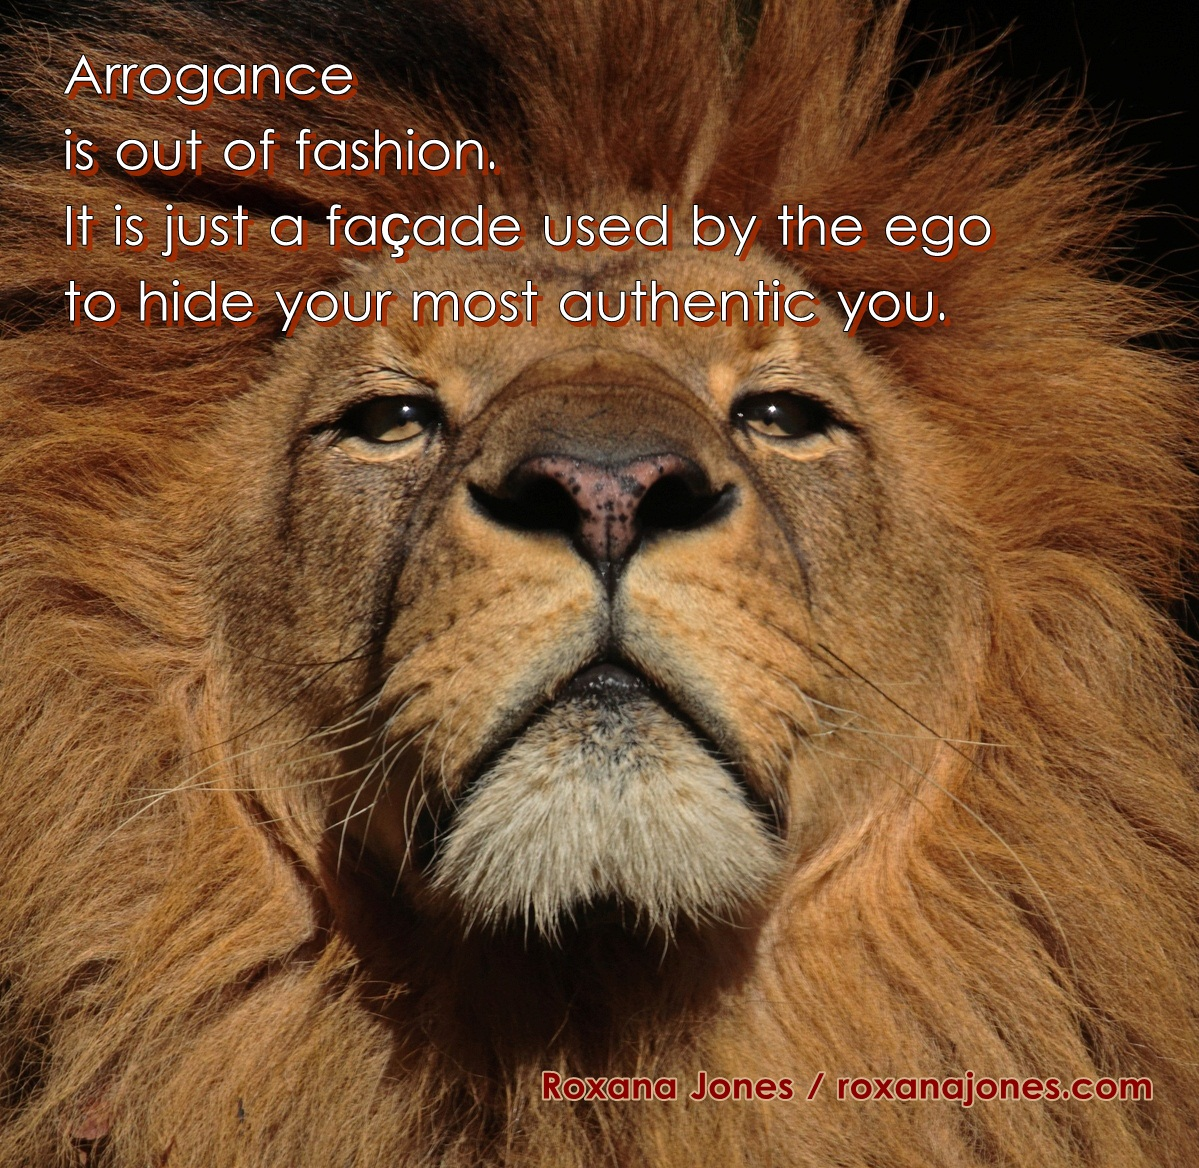 62 Top Arrogance Quotes And Sayings